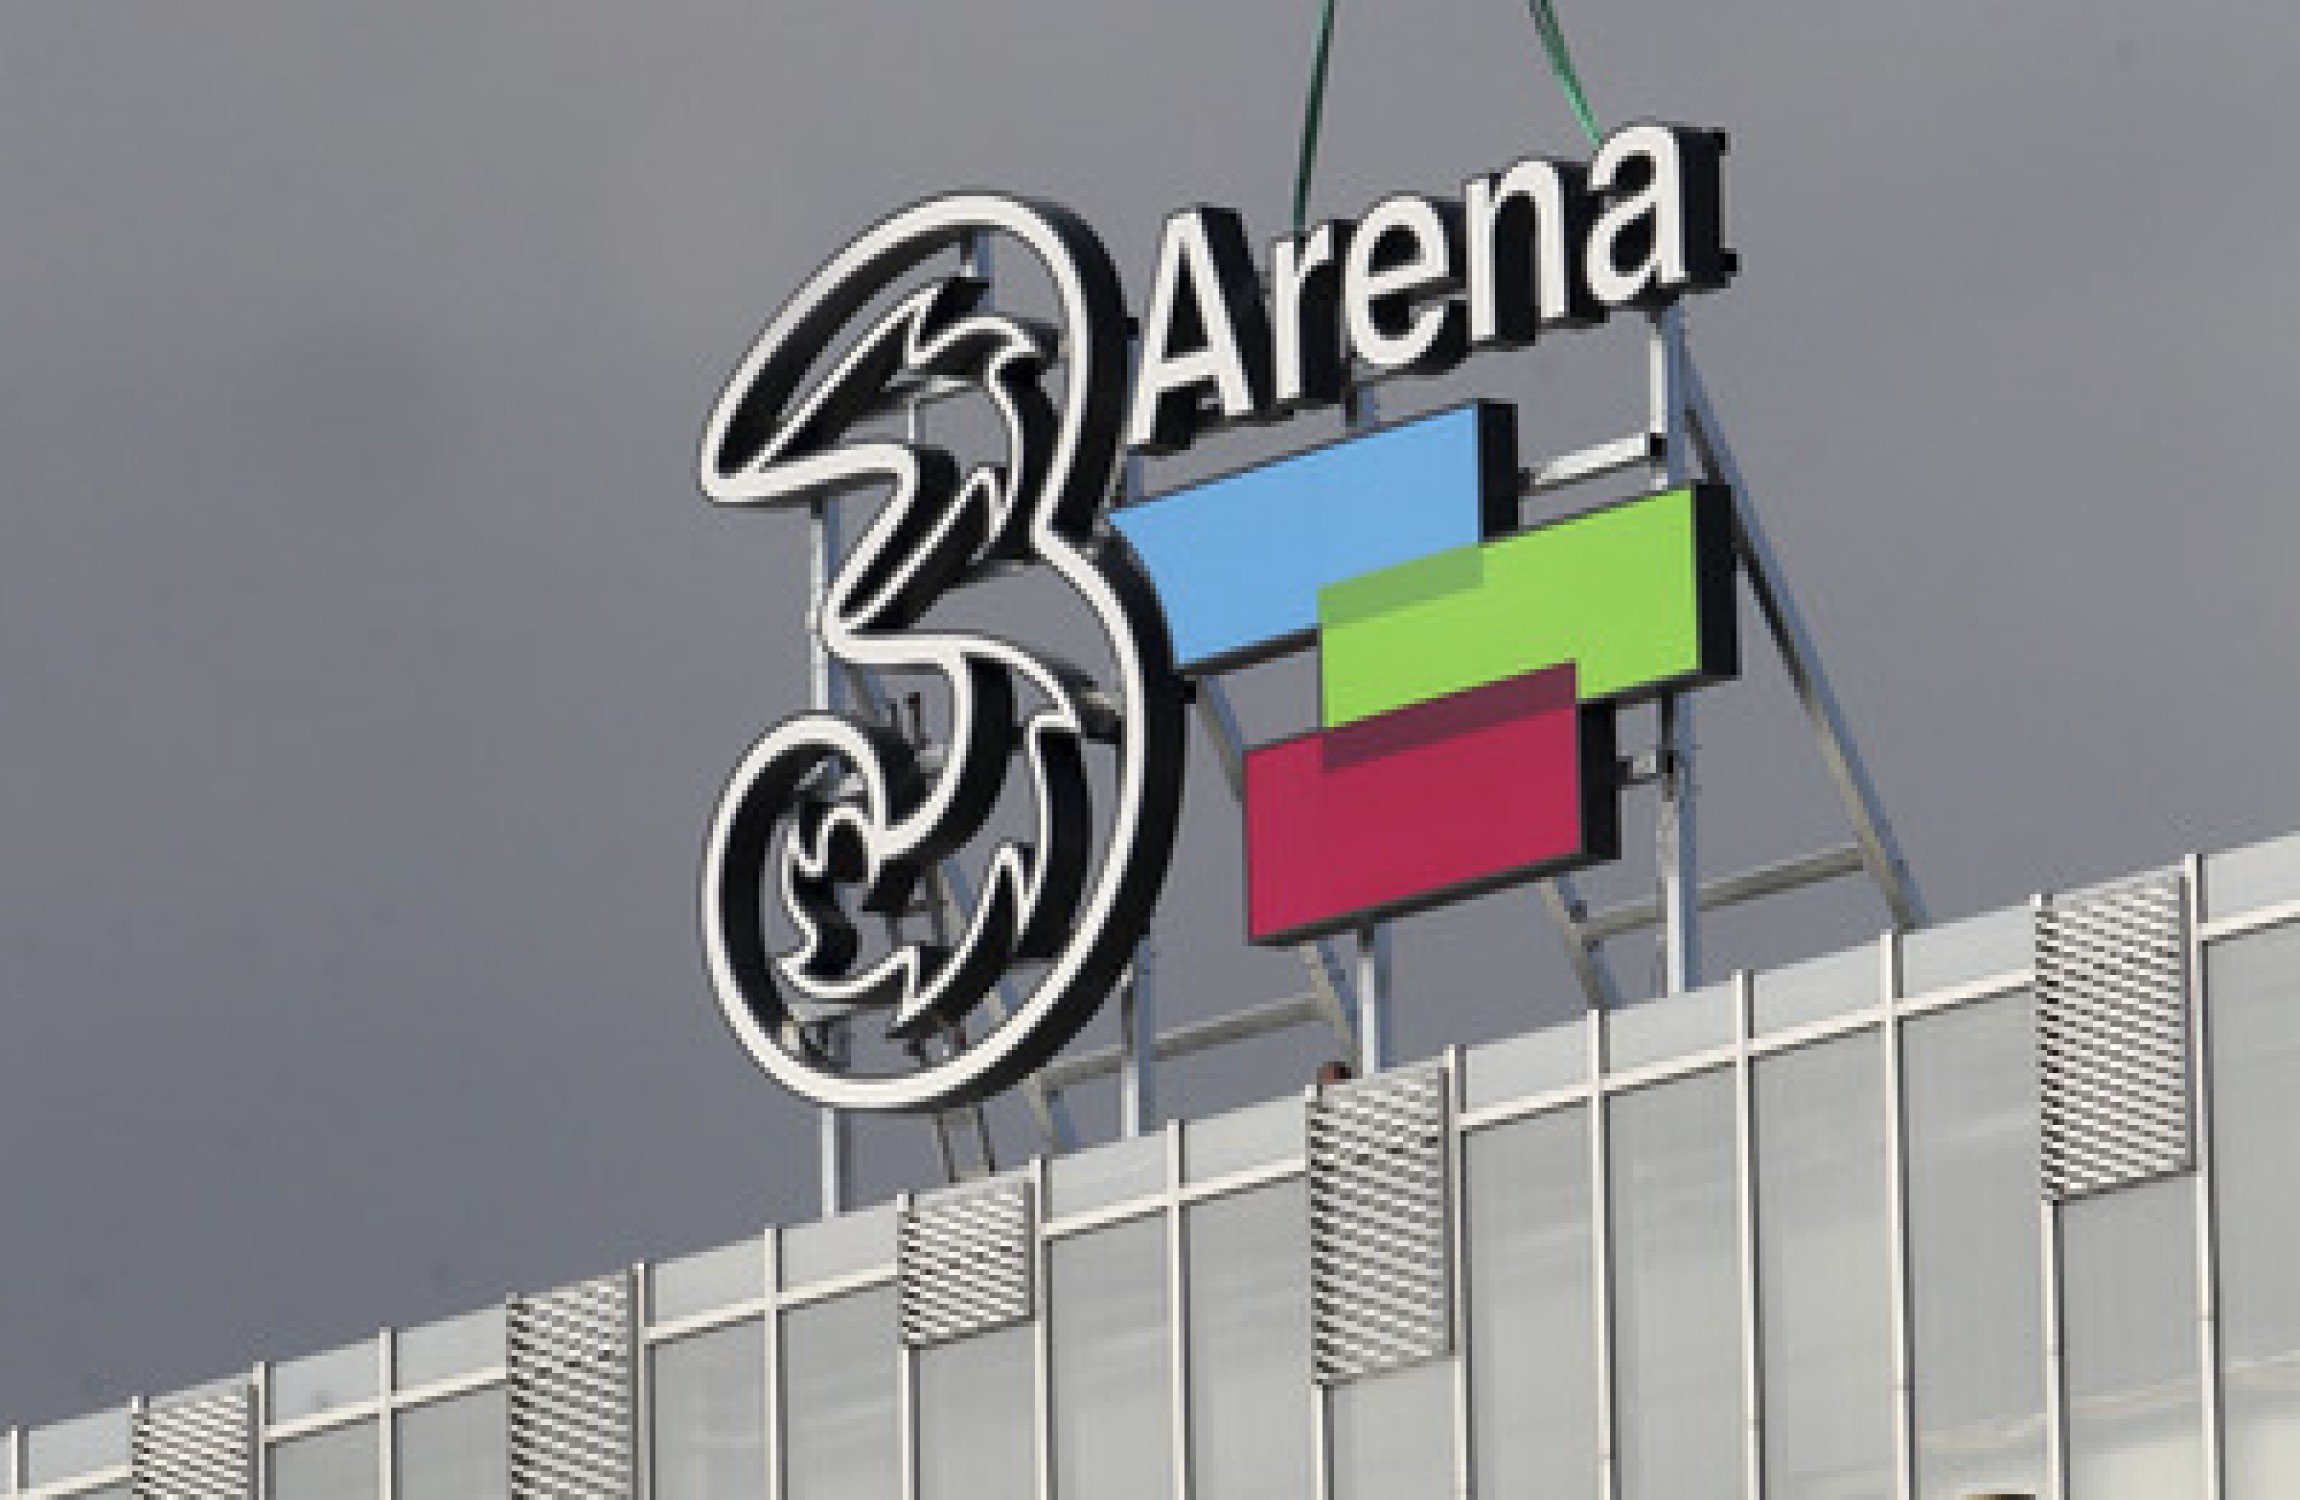 3Arena beefs up security following Manchester attack